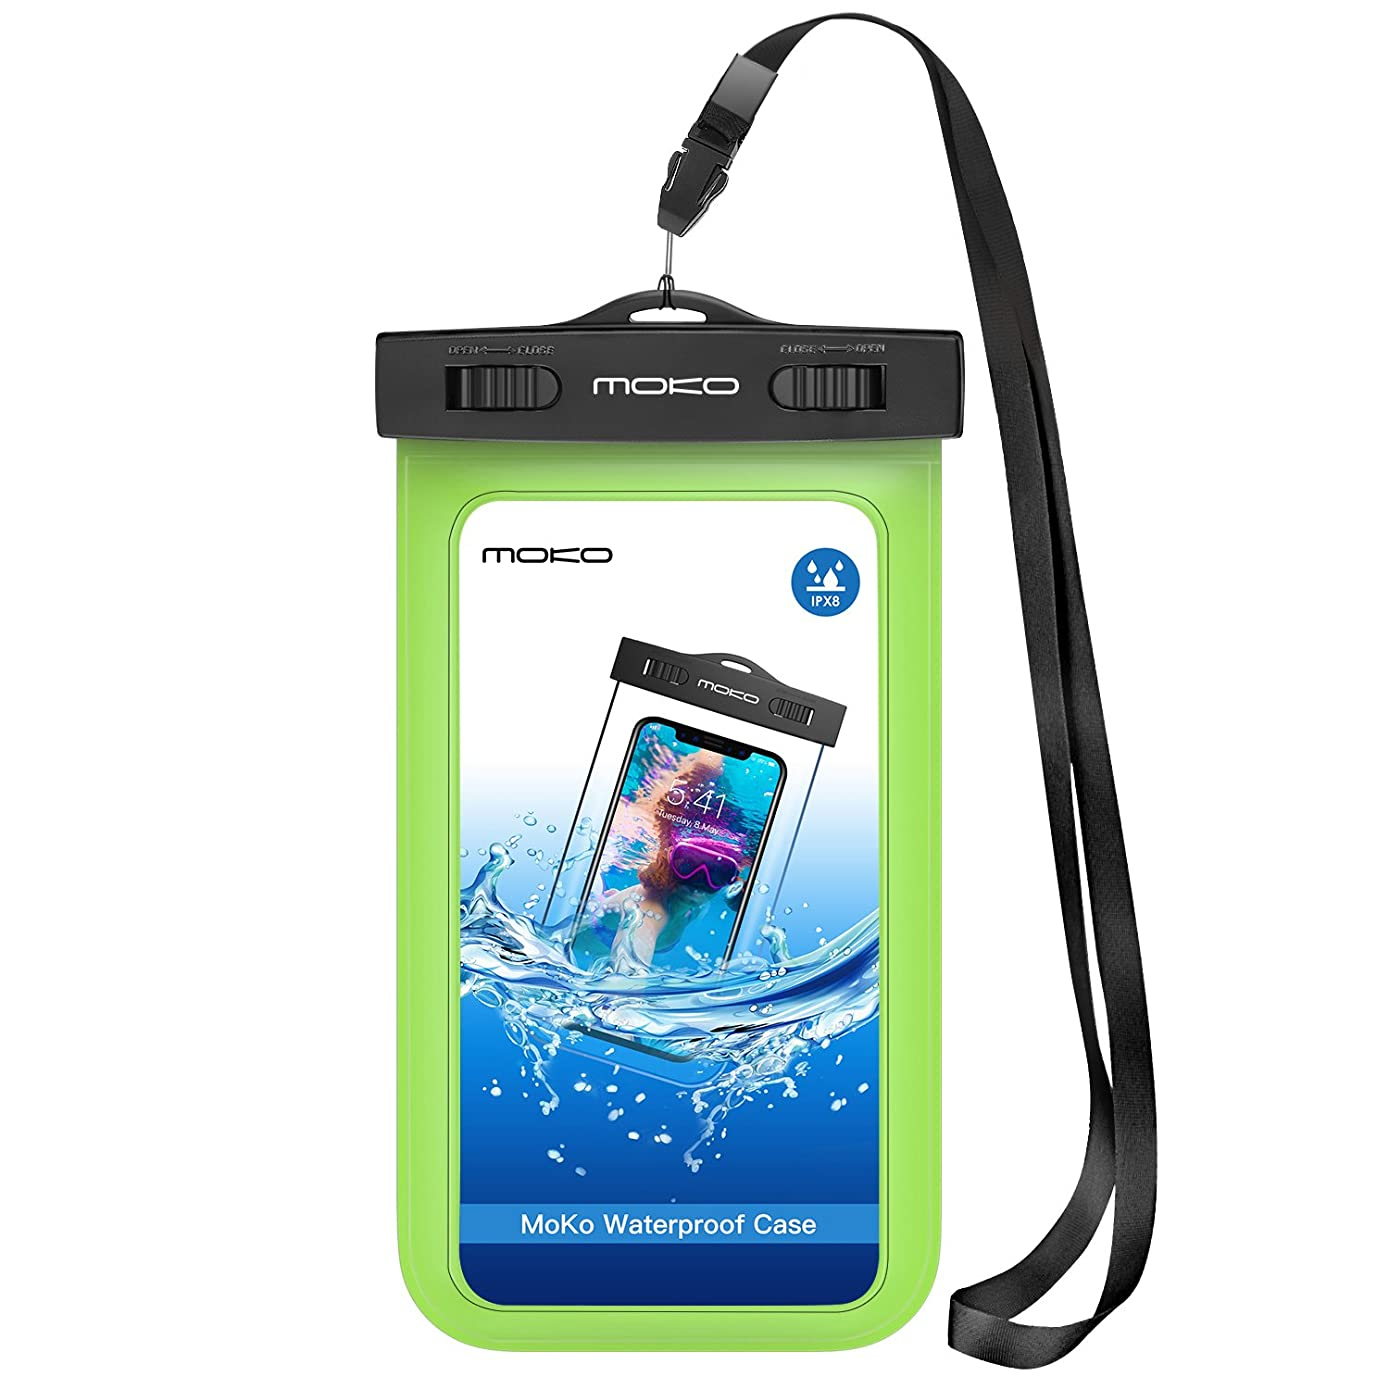 MoKo Waterproof Phone Pouch, Underwater Waterproof CellPhone Case Dry Bag with Lanyard Armband Compatible with iPhone X/Xs/Xr/Xs Max, 8/7/6s Plus, Samsung Galaxy S10/S9/S8 Plus, S10 e, S7 edge, Green